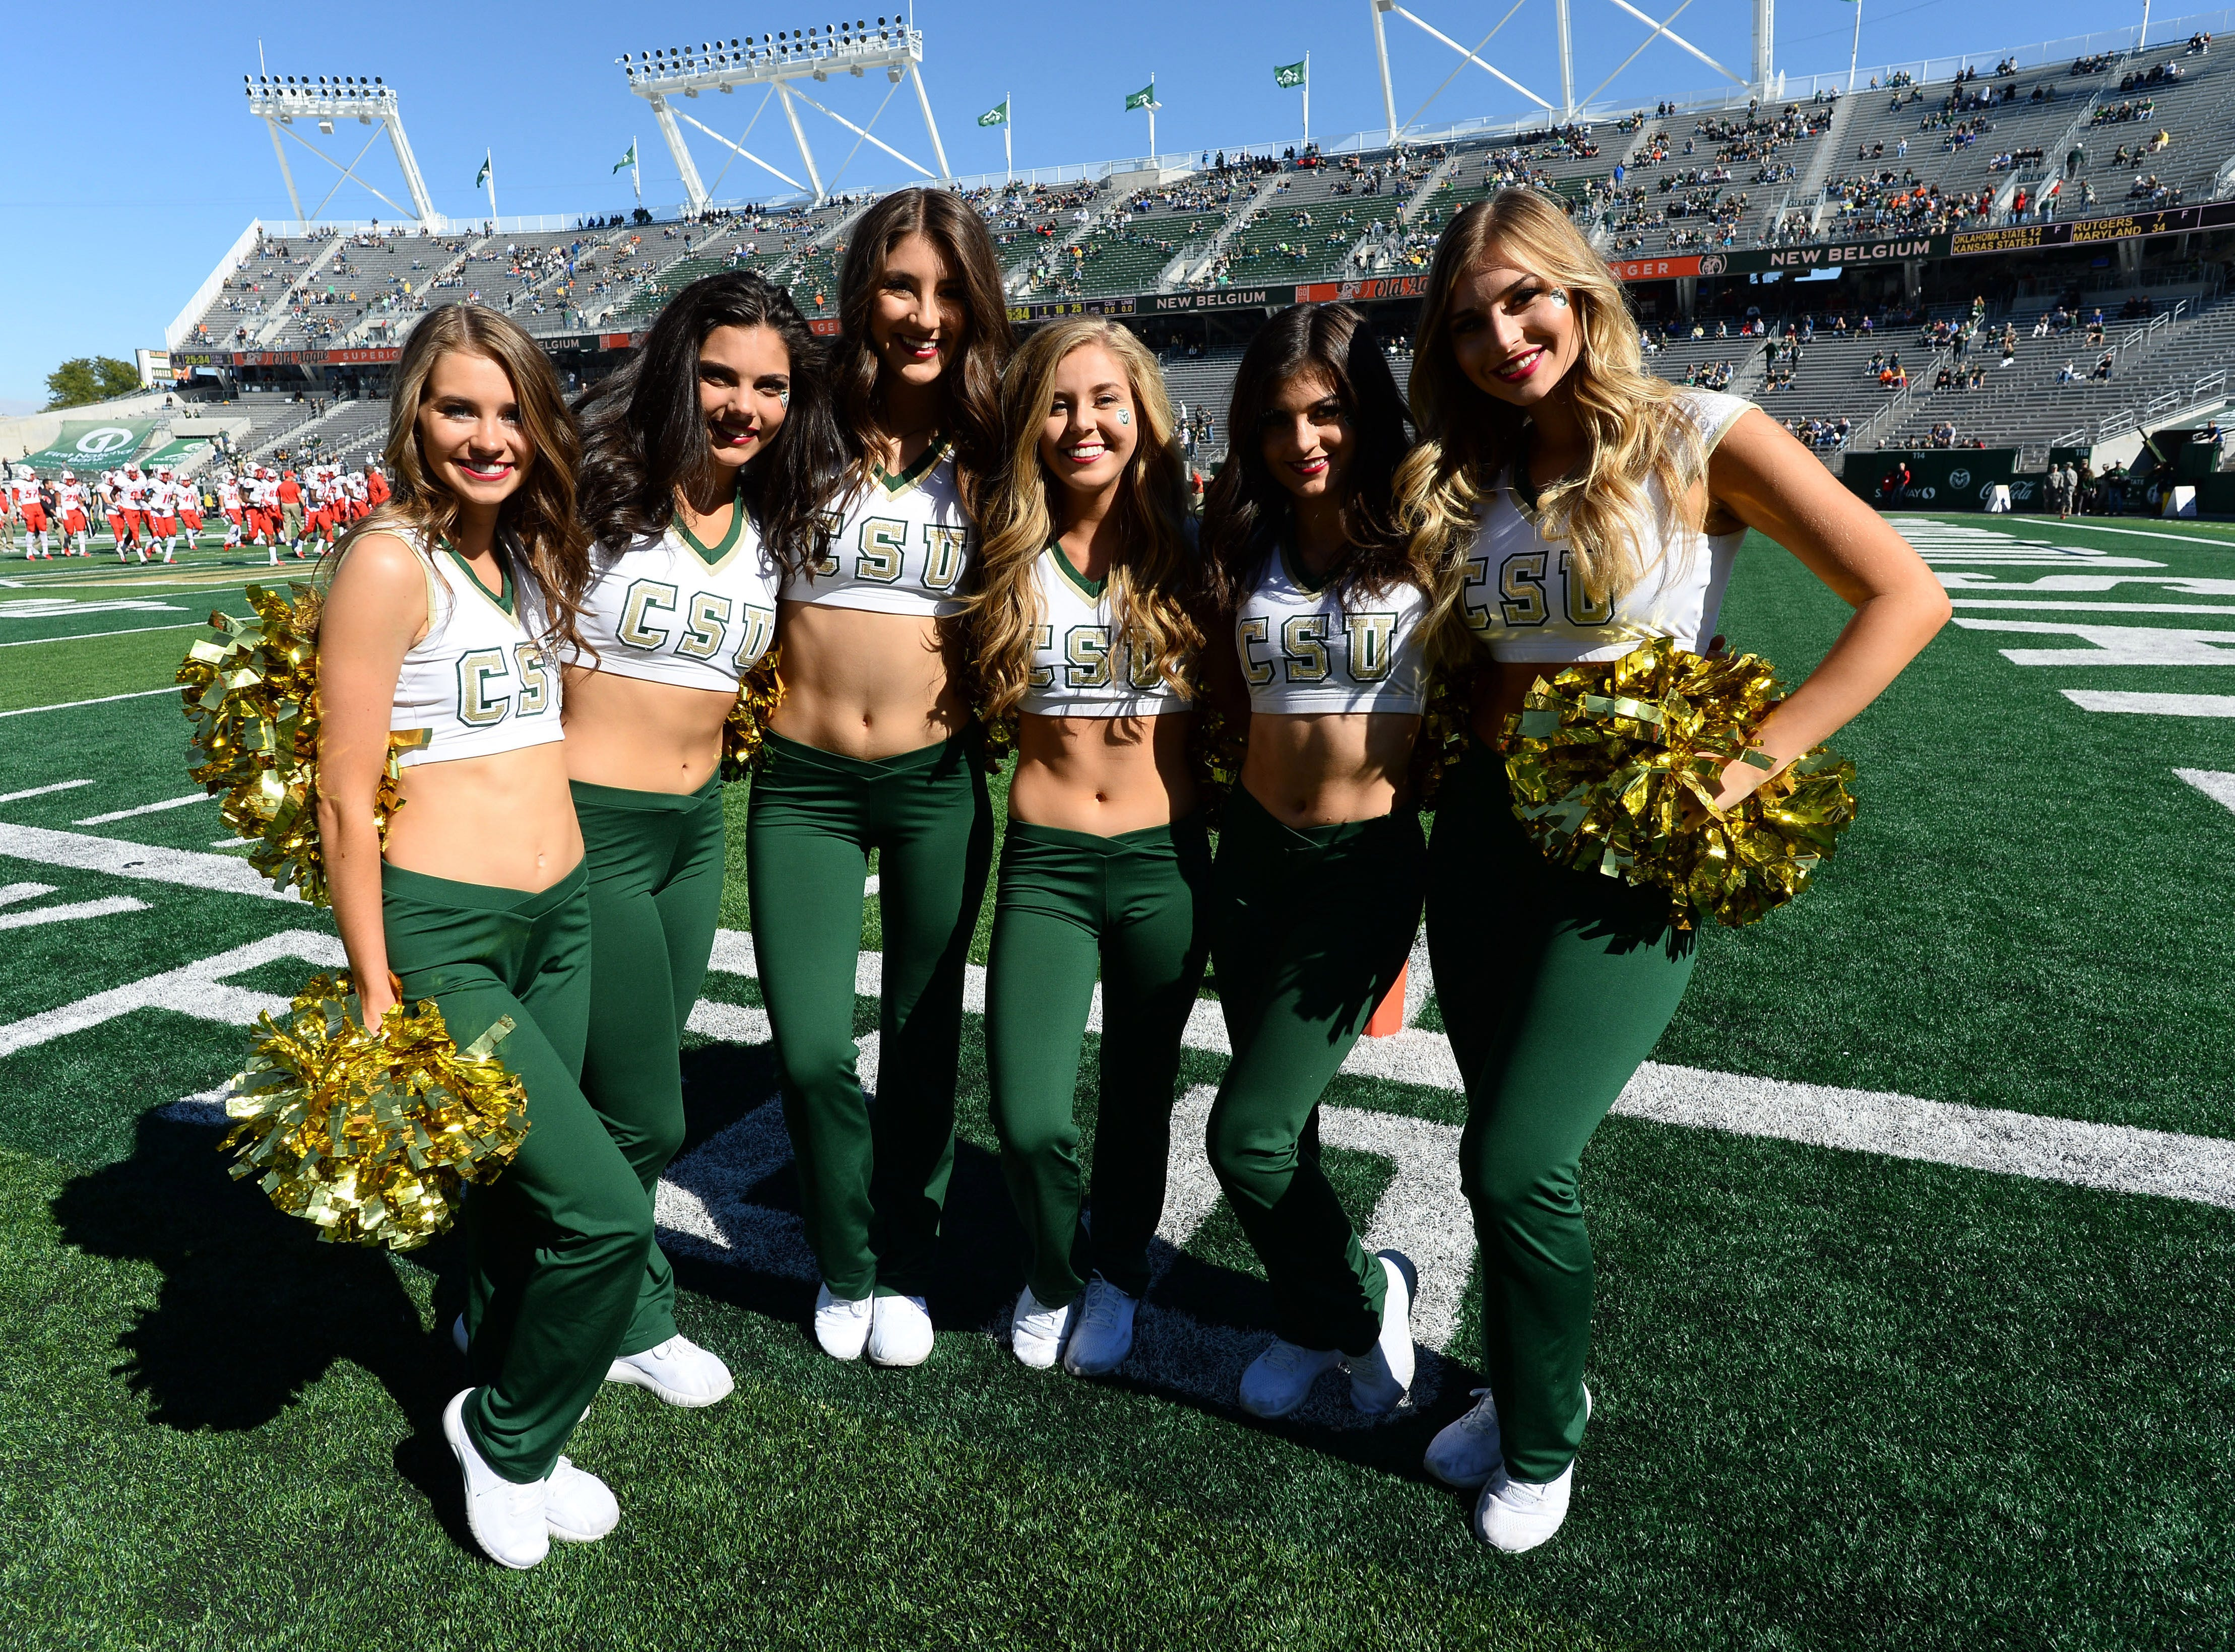 Week 7: Colorado State Rams dance team members pose for a photo before the game against the New Mexico Lobos at Canvas Stadium.